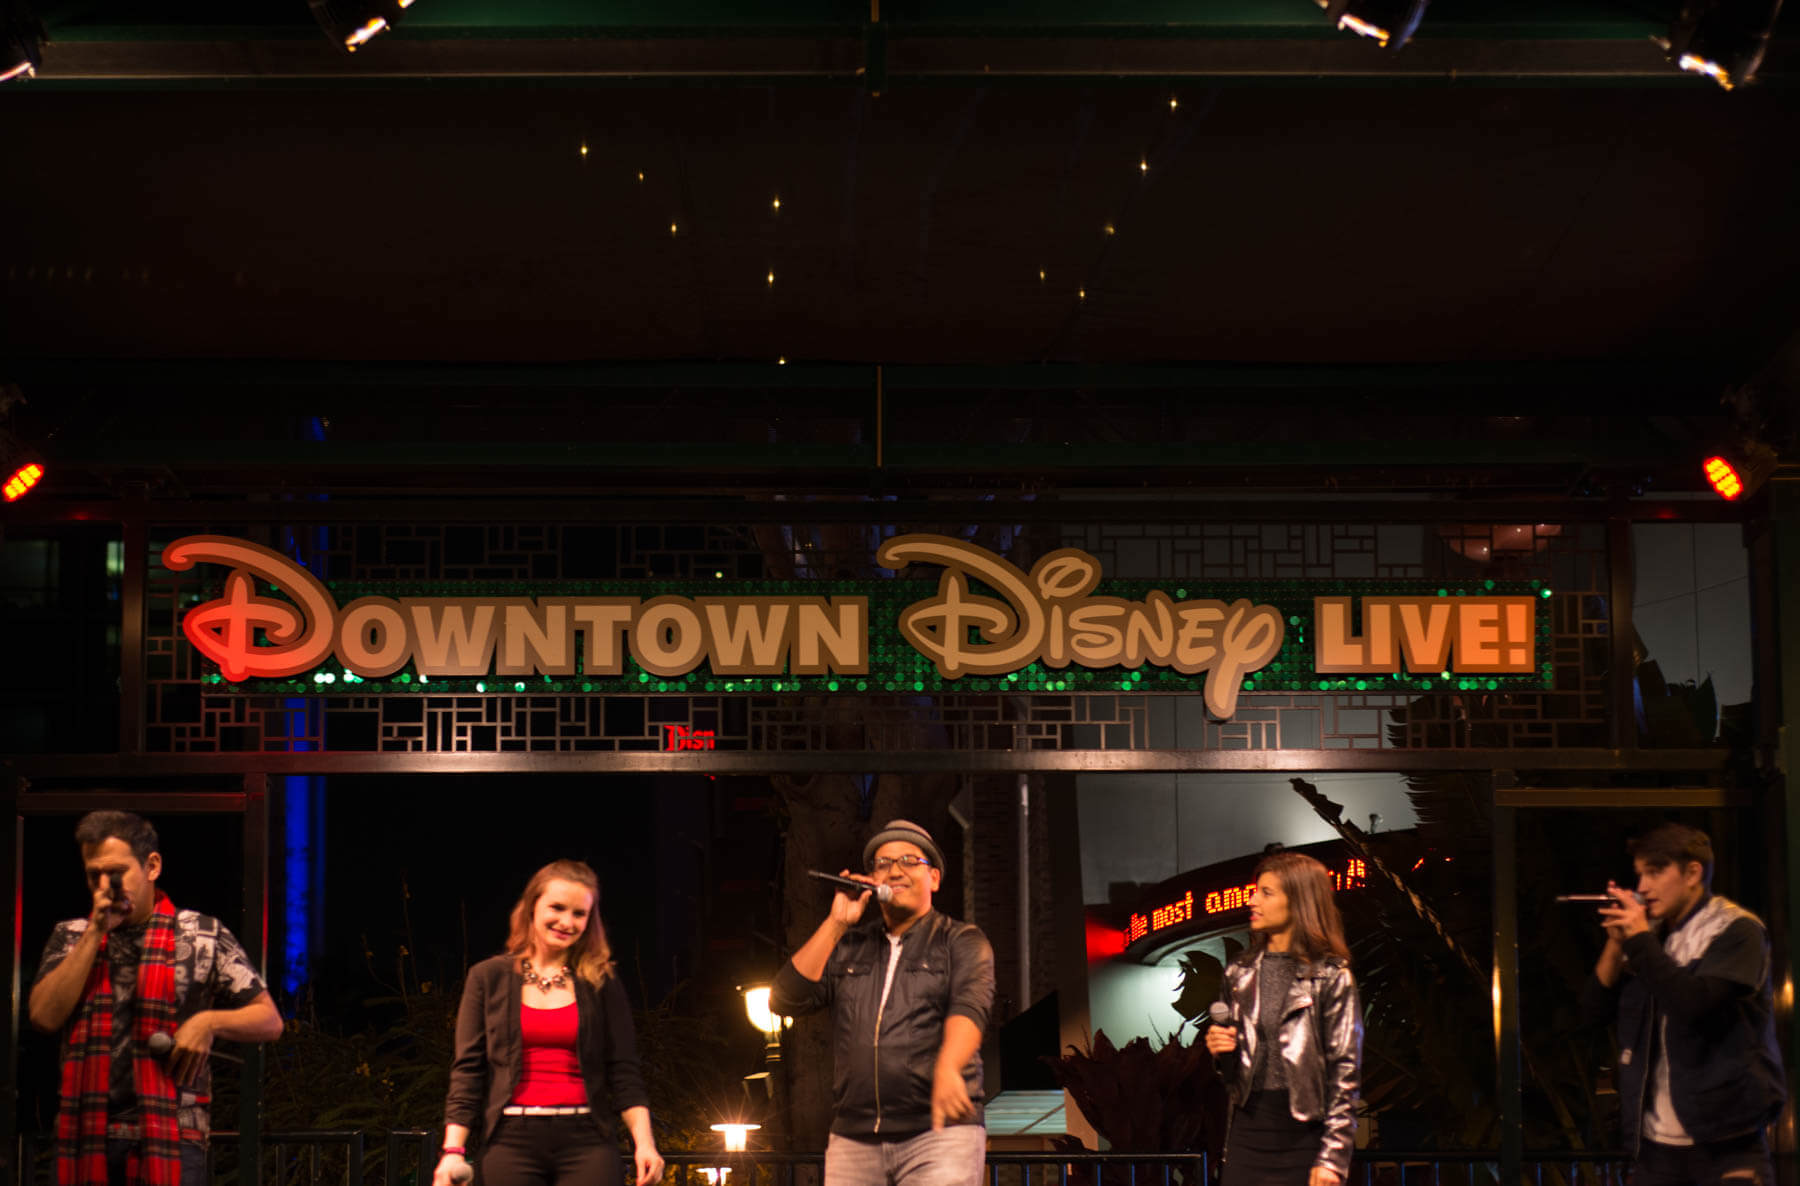 A Cappella Group Singing at Downtown Disney - Nightlife at Disneyland